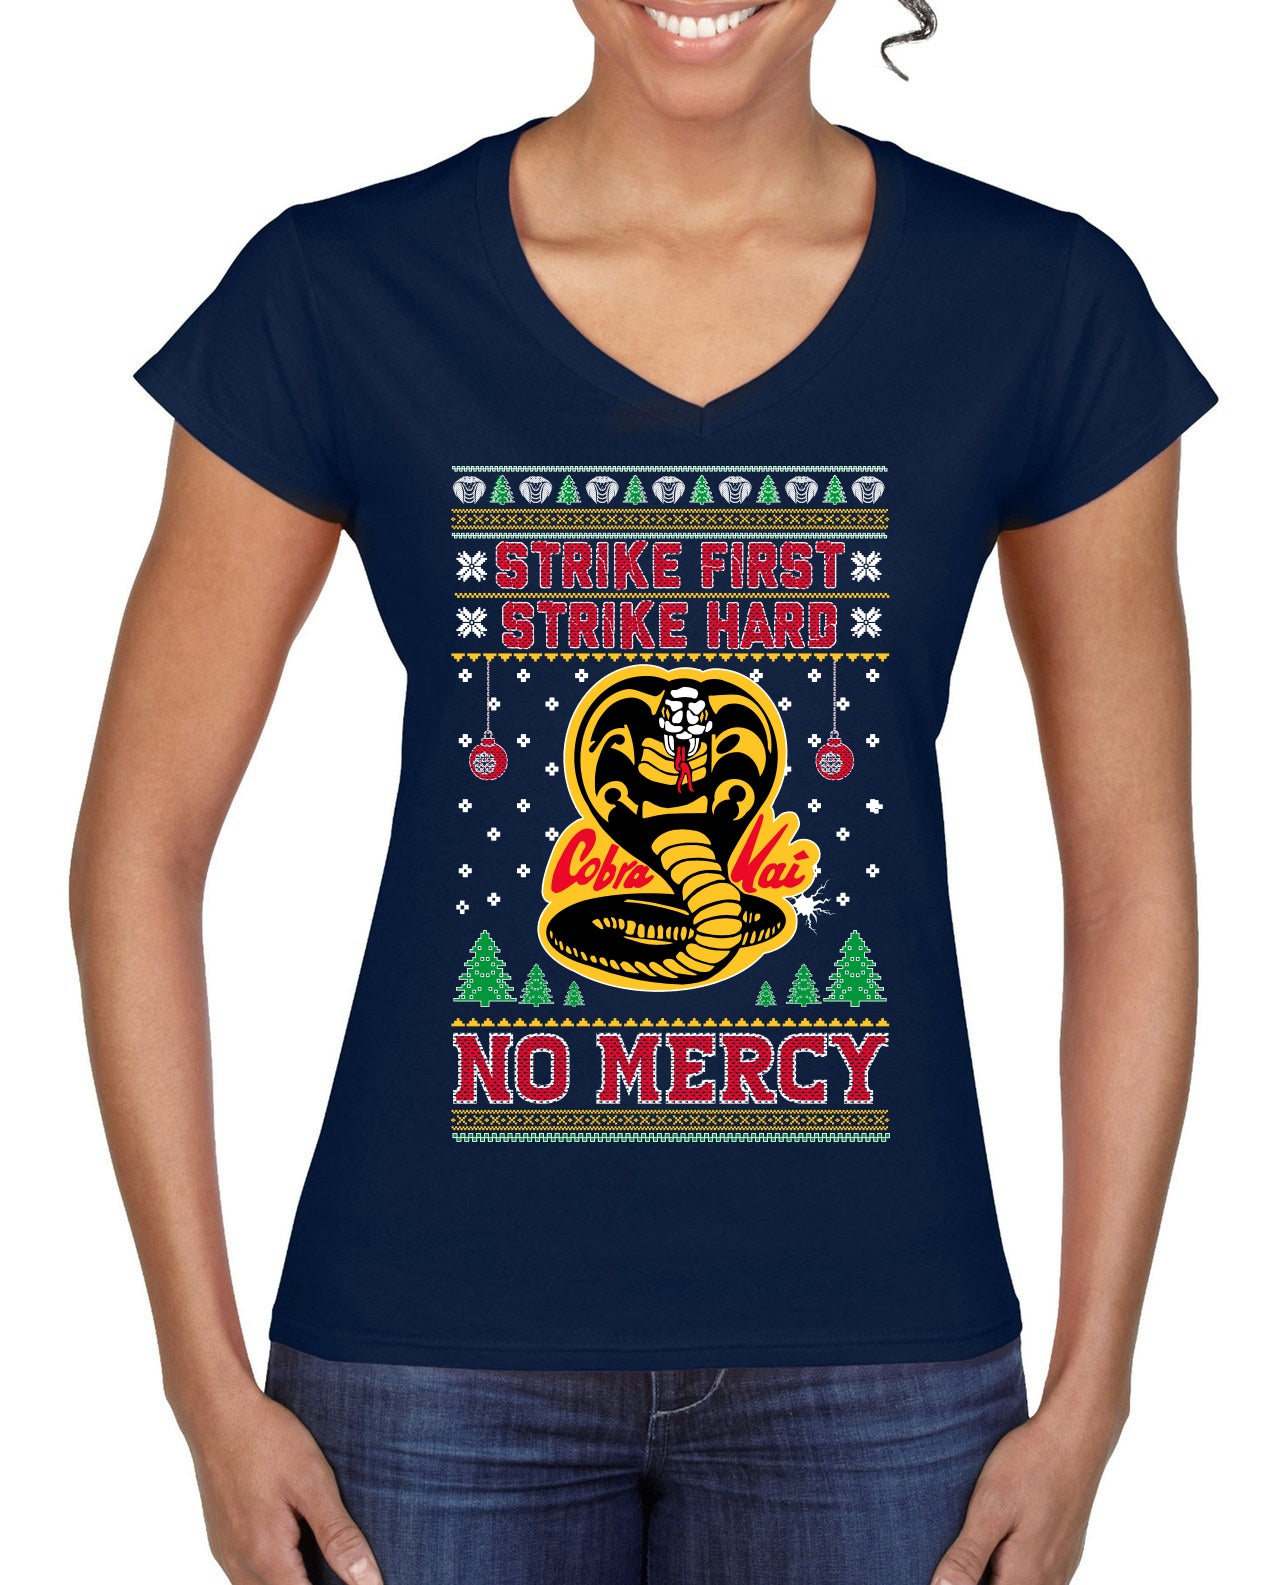 Strike First Strike Hard No Mercy Xmas Ugly Christmas Sweater Women's Standard V-Neck Tee